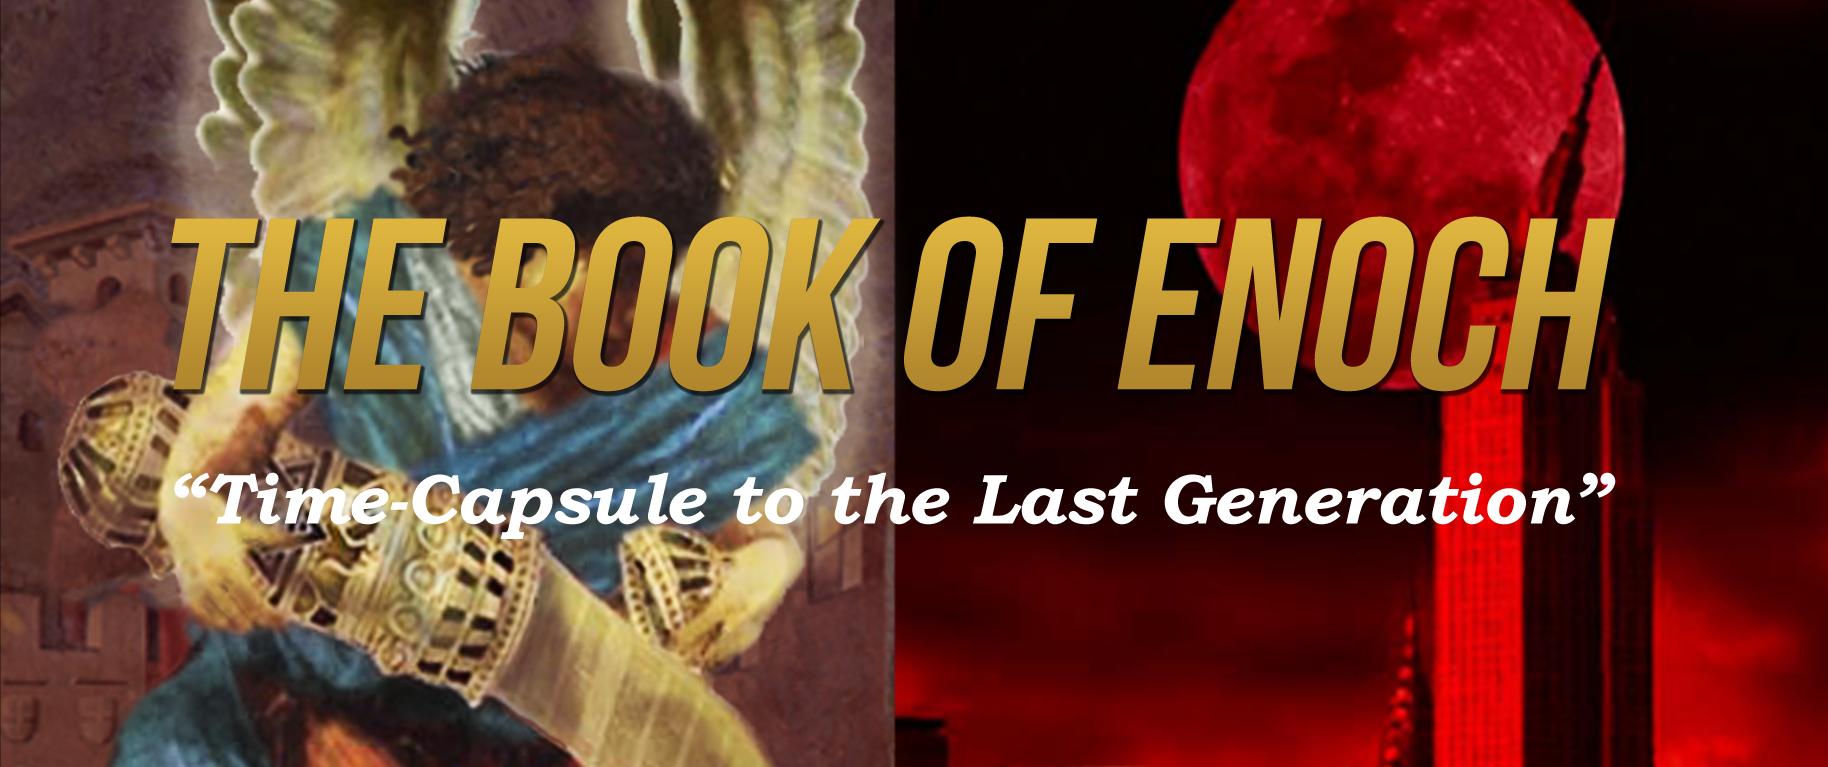 Enoch ~ Time-Capsule to the Last Geneation